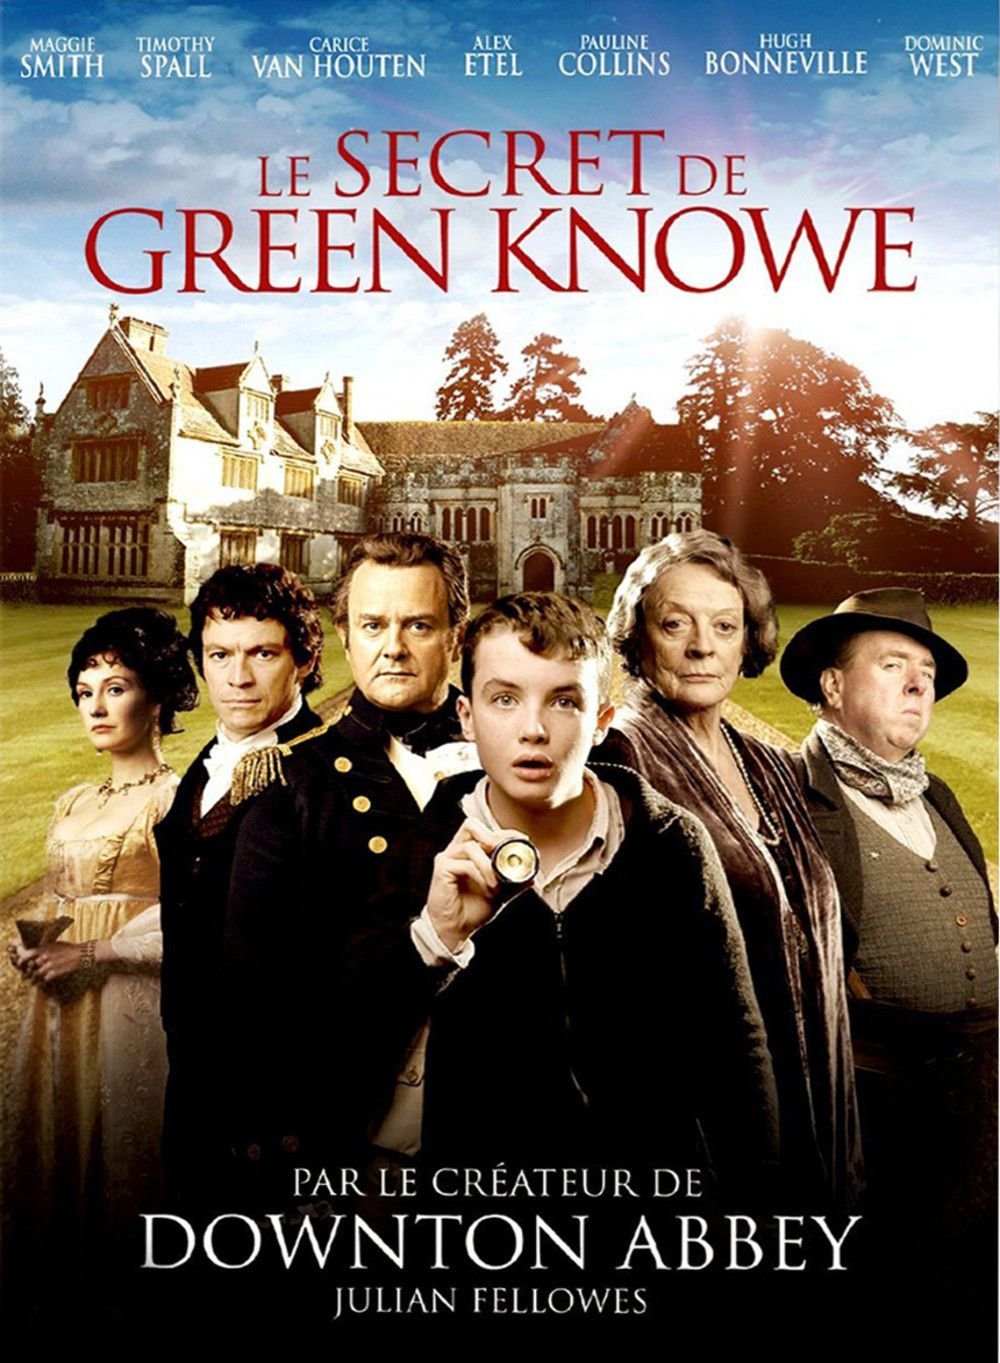 Le Secret de Green Knowe / CINEMA /  Julian Fellowes